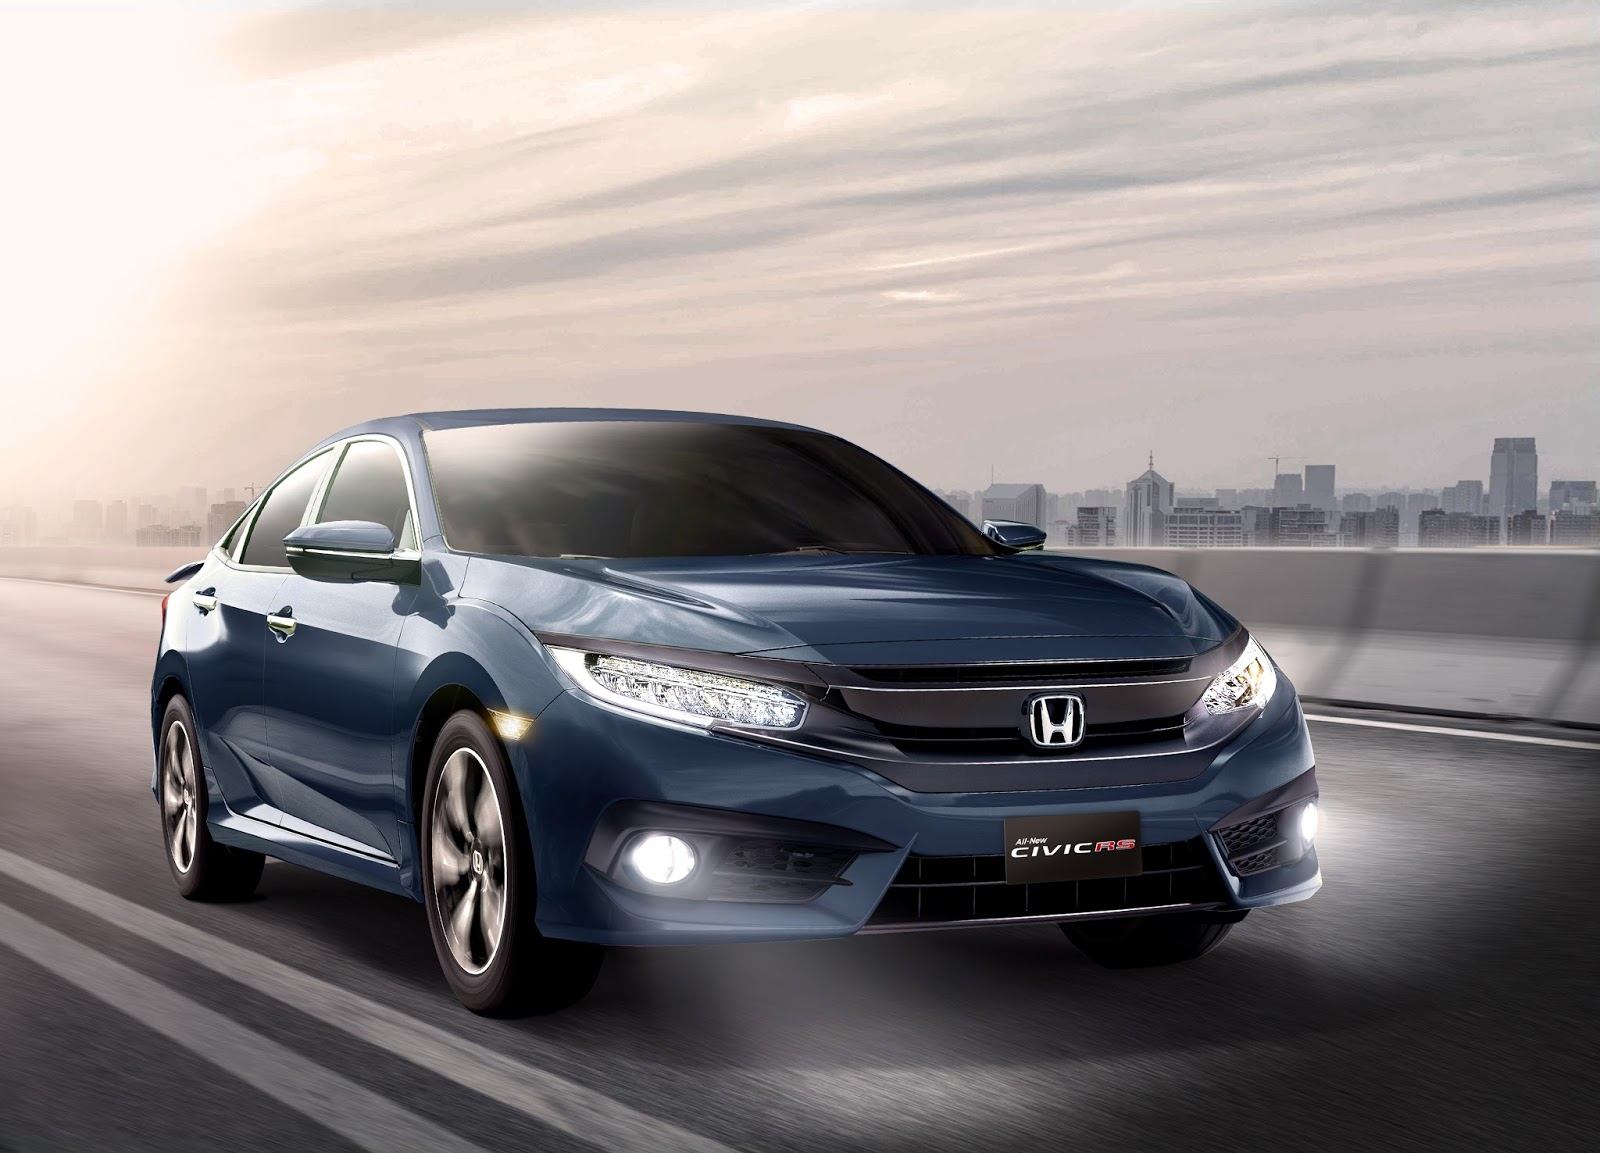 The 10th Generation Honda Civic Charms With Its Completely Redesigned Exterior Modern And Expansive Pit Interior A Host Of New Advanced